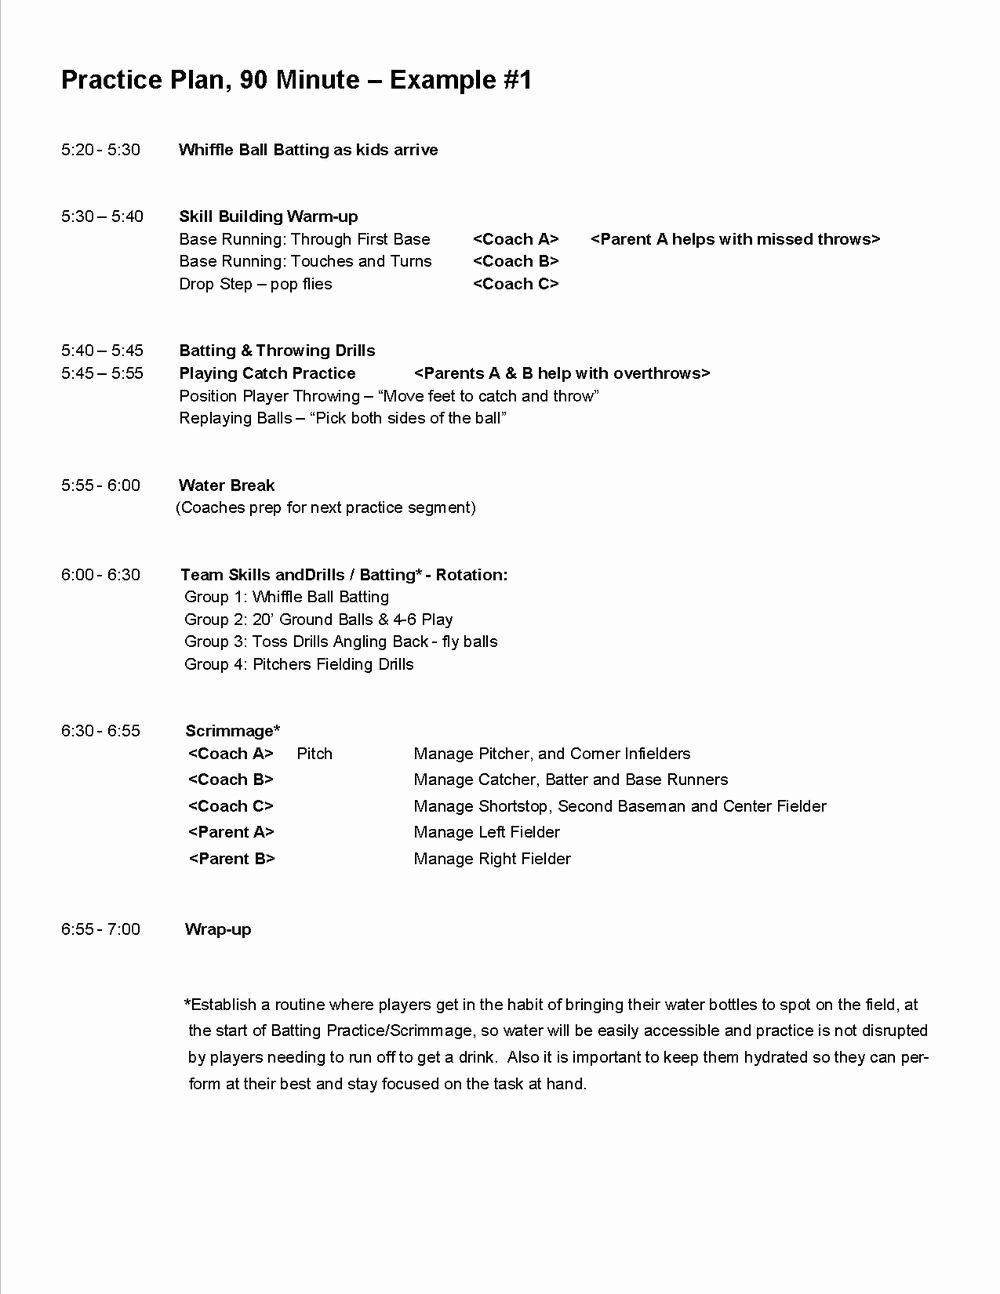 Basketball Practice Plan Template Awesome Practice Plans Baseball Positive In 2020 Basketball Practice Plans Softball Coach Soccer Practice Plans